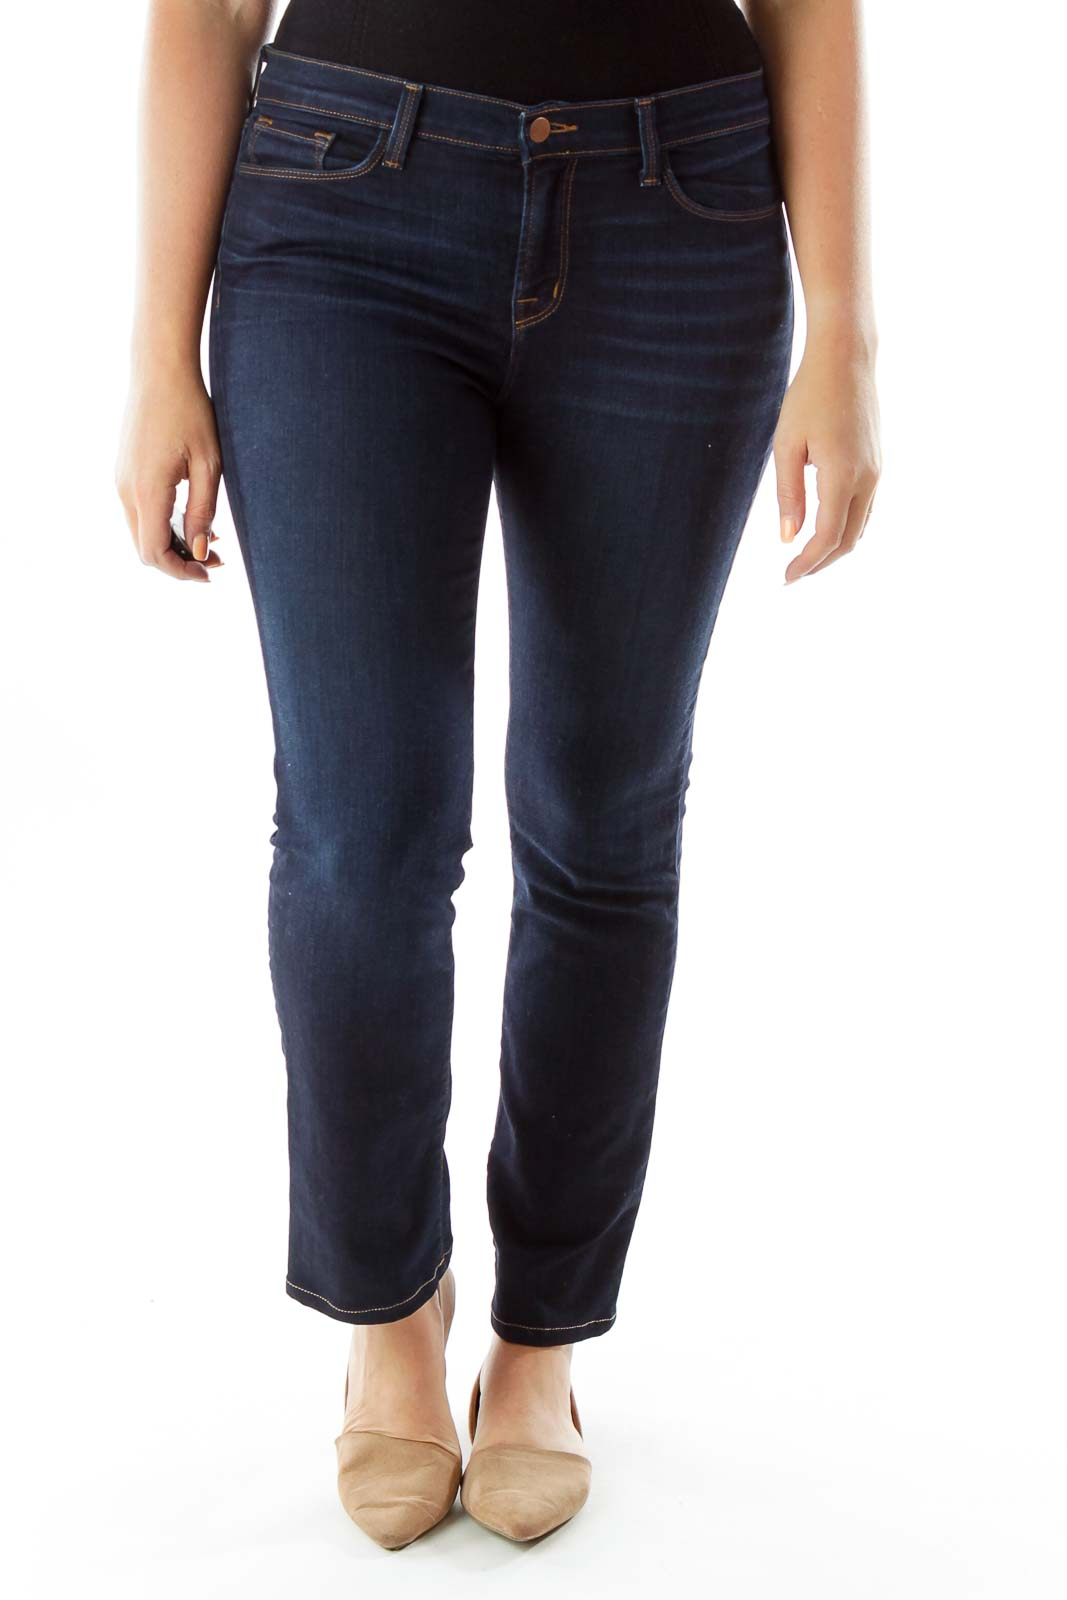 Navy Pocketed Zipper Fly Straight-Leg Jeans